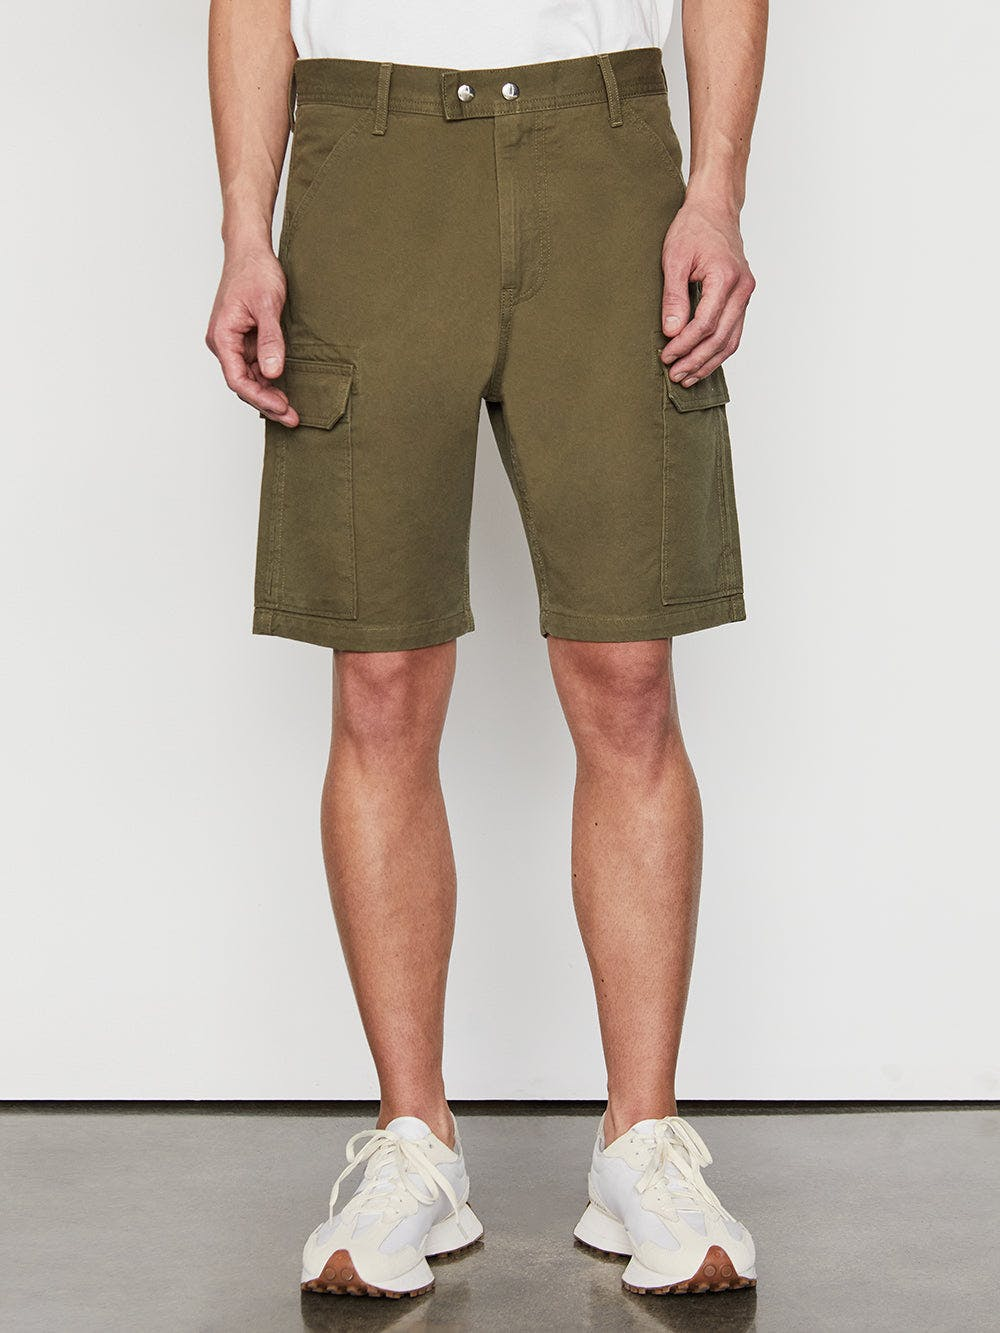 shorts front view